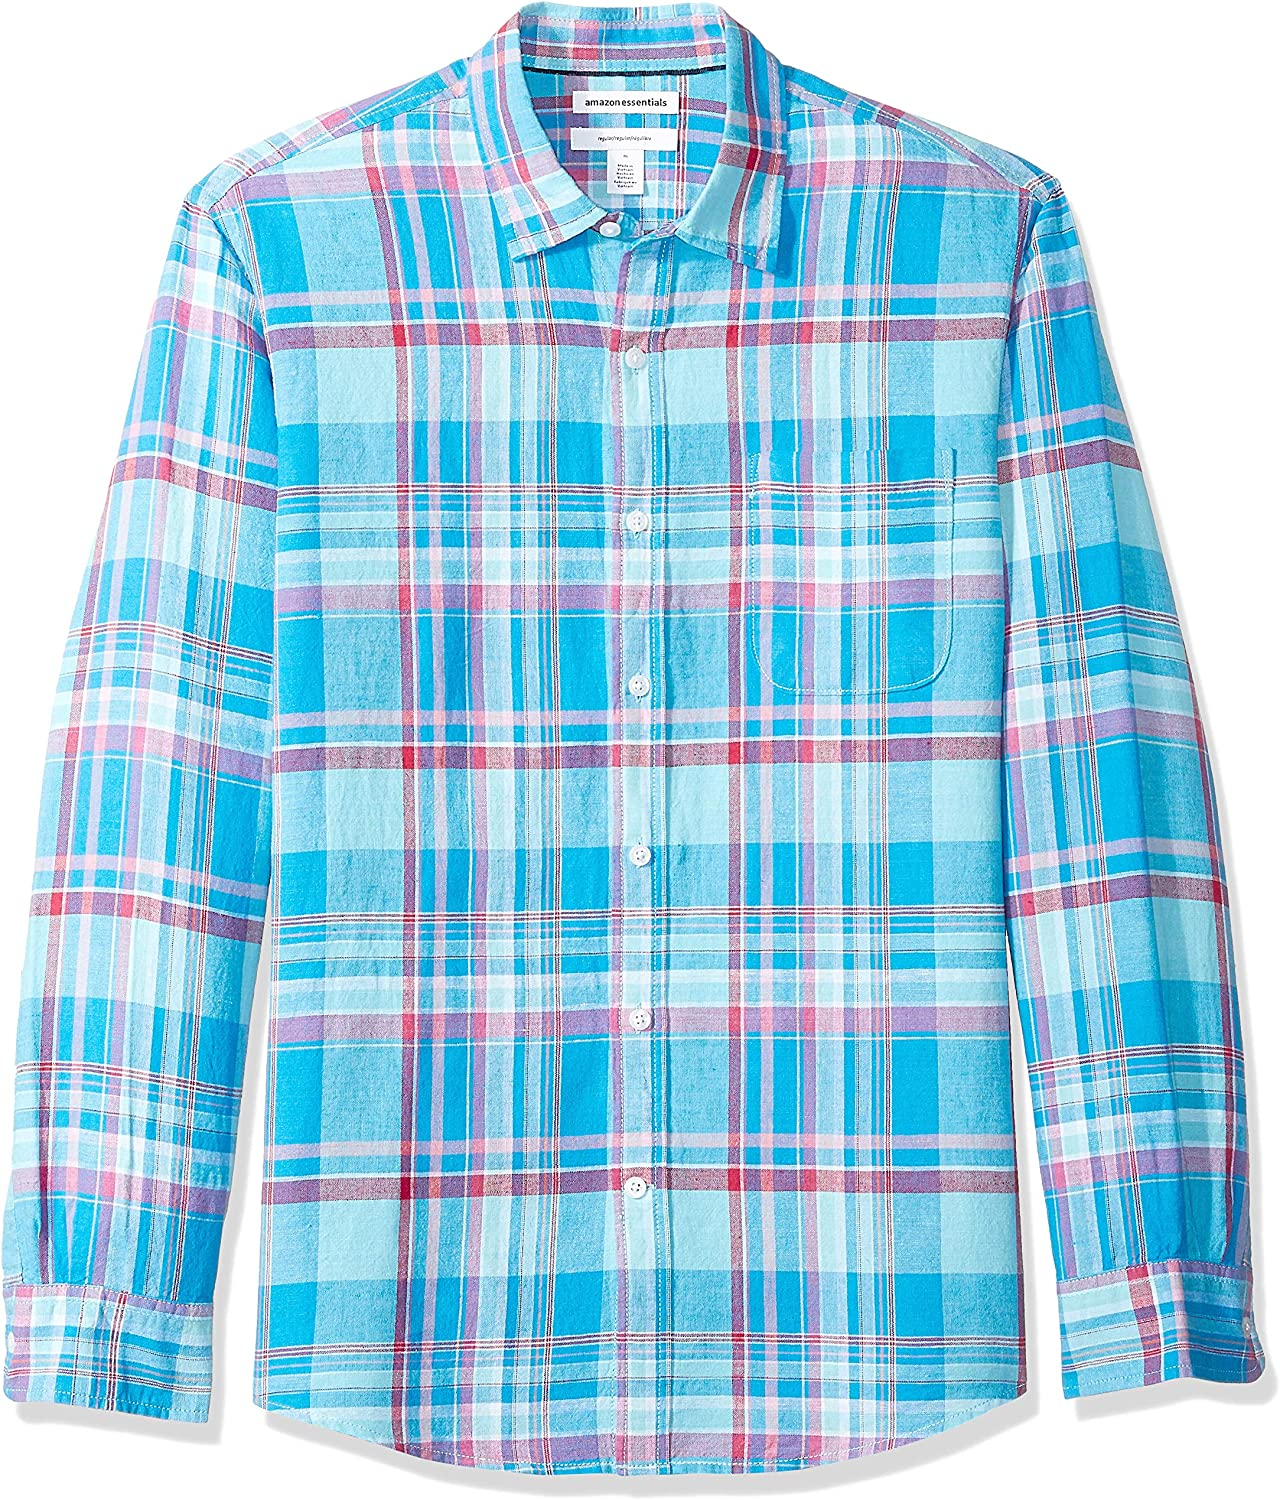 Amazon Essentials - Camisa regular de lino a cuadros con manga larga para hombre